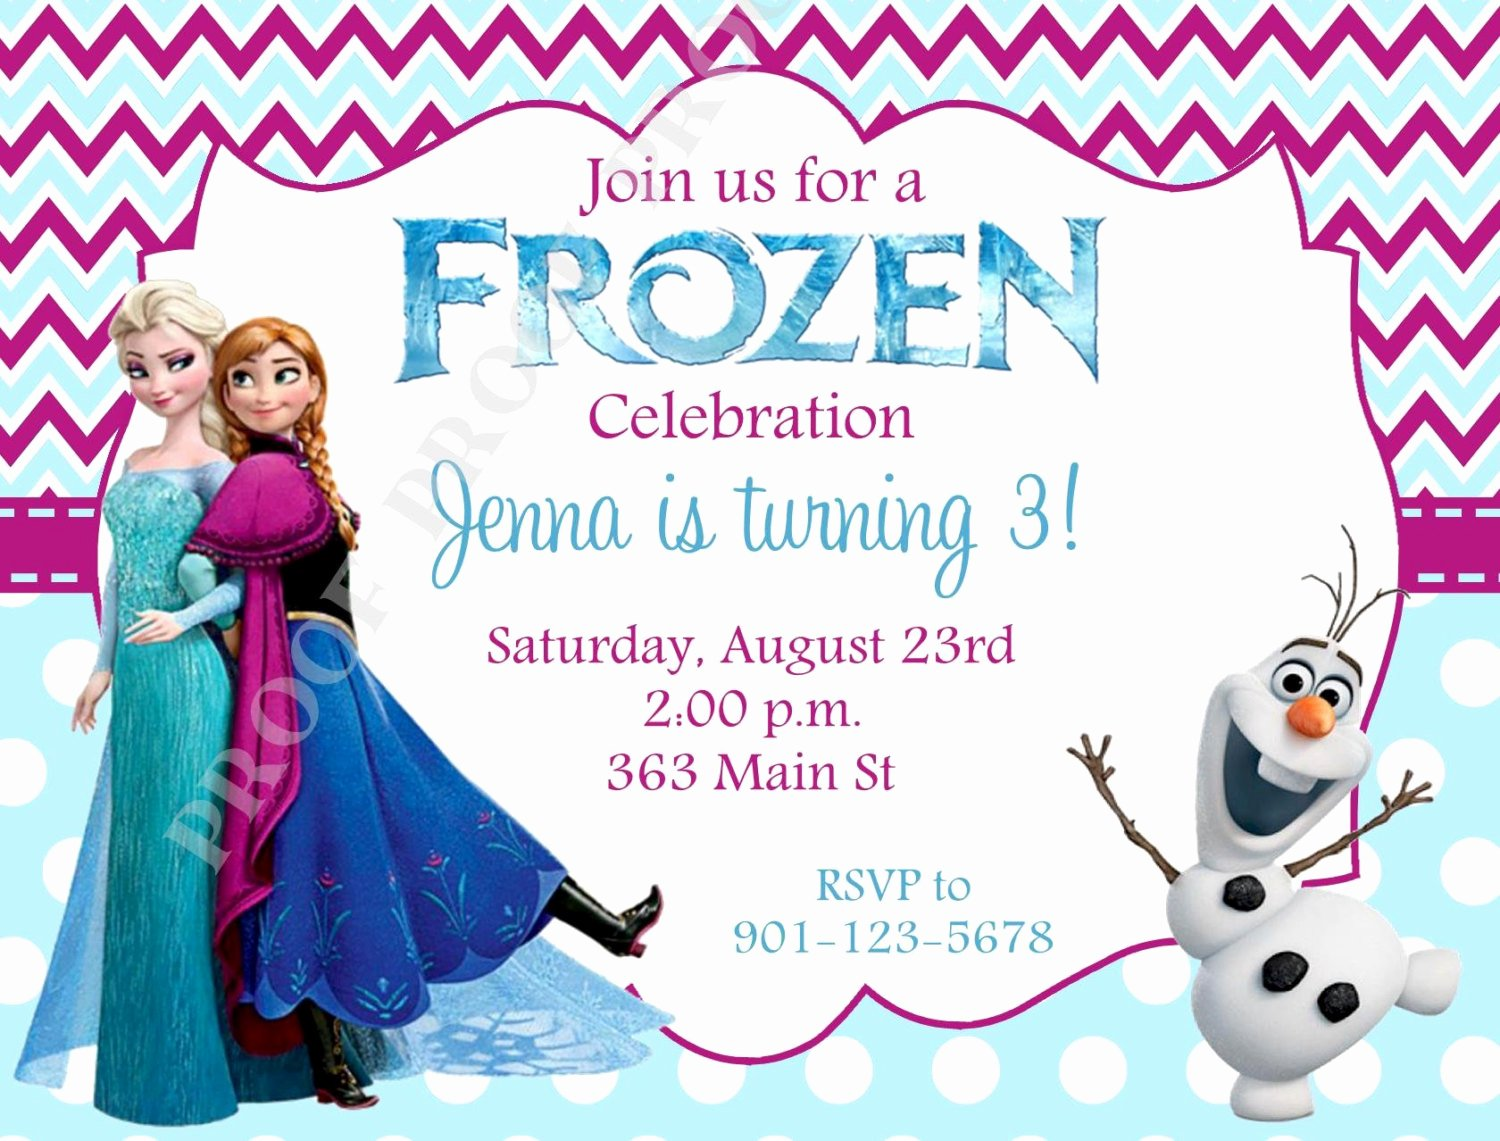 Free Frozen Invitation Template Inspirational 10 Printed Frozen Invitations with Envelopes Free Return